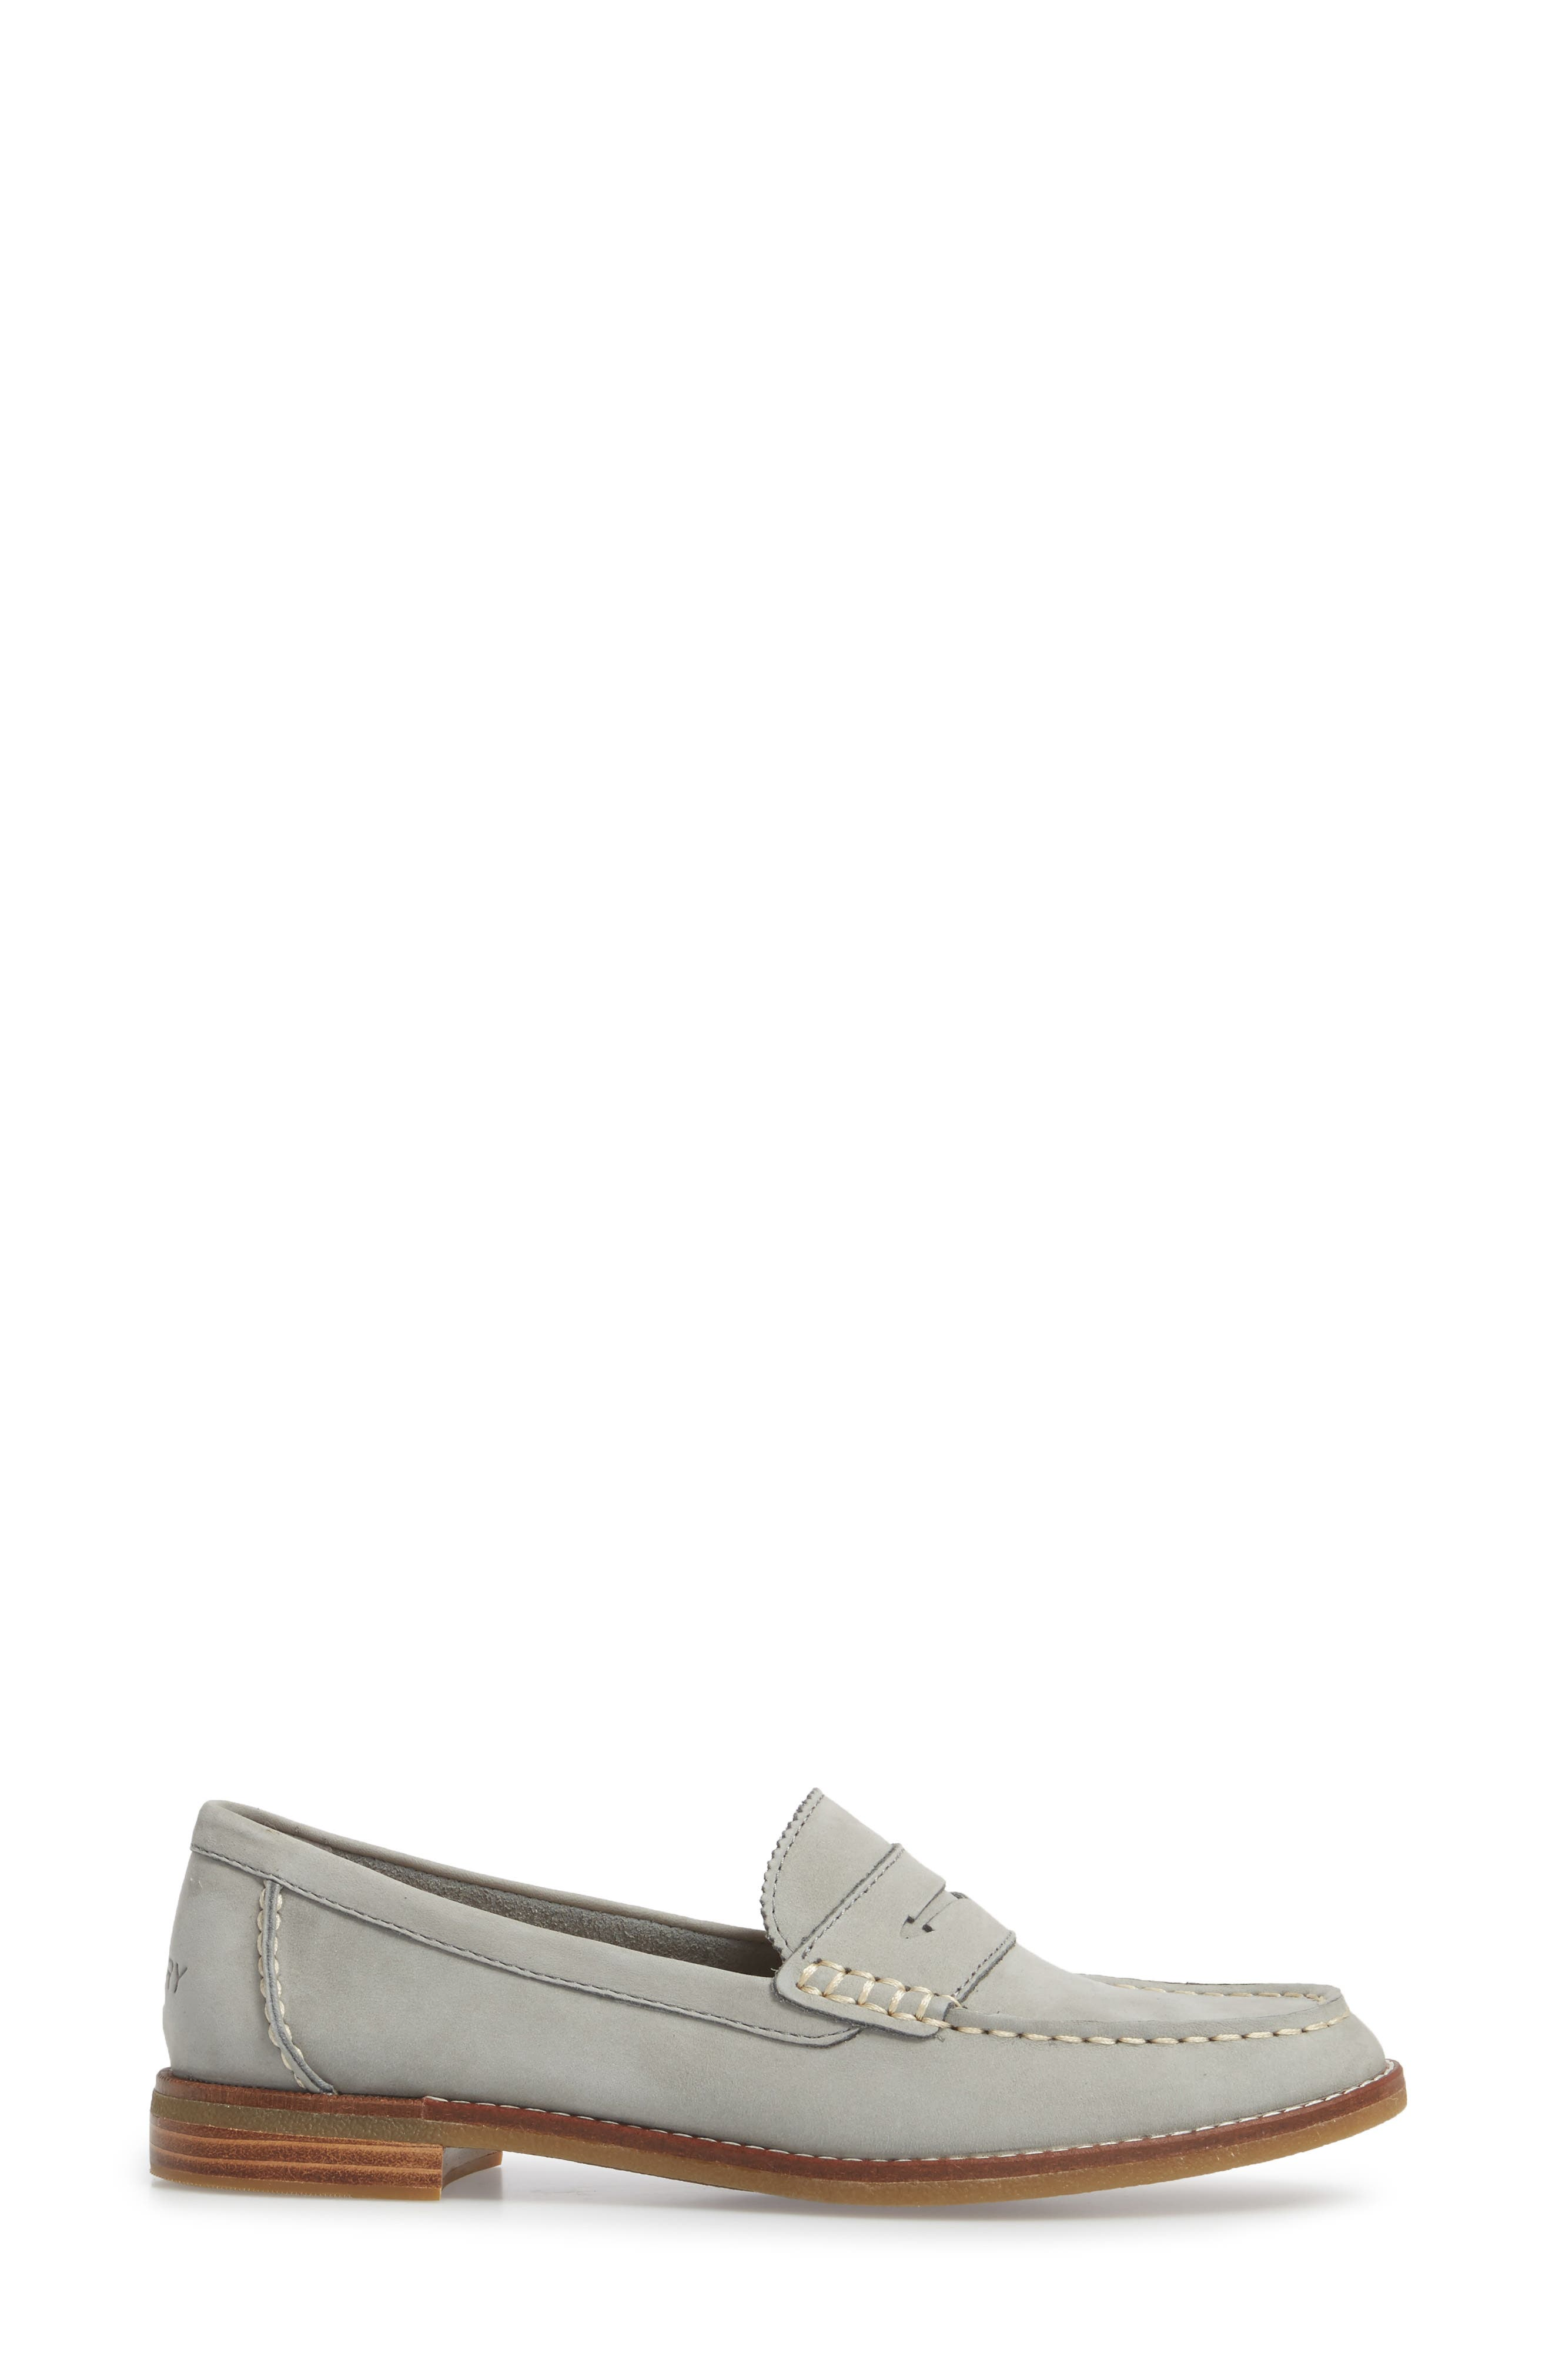 SPERRY, Seaport Penny Loafer, Alternate thumbnail 3, color, GREY LEATHER